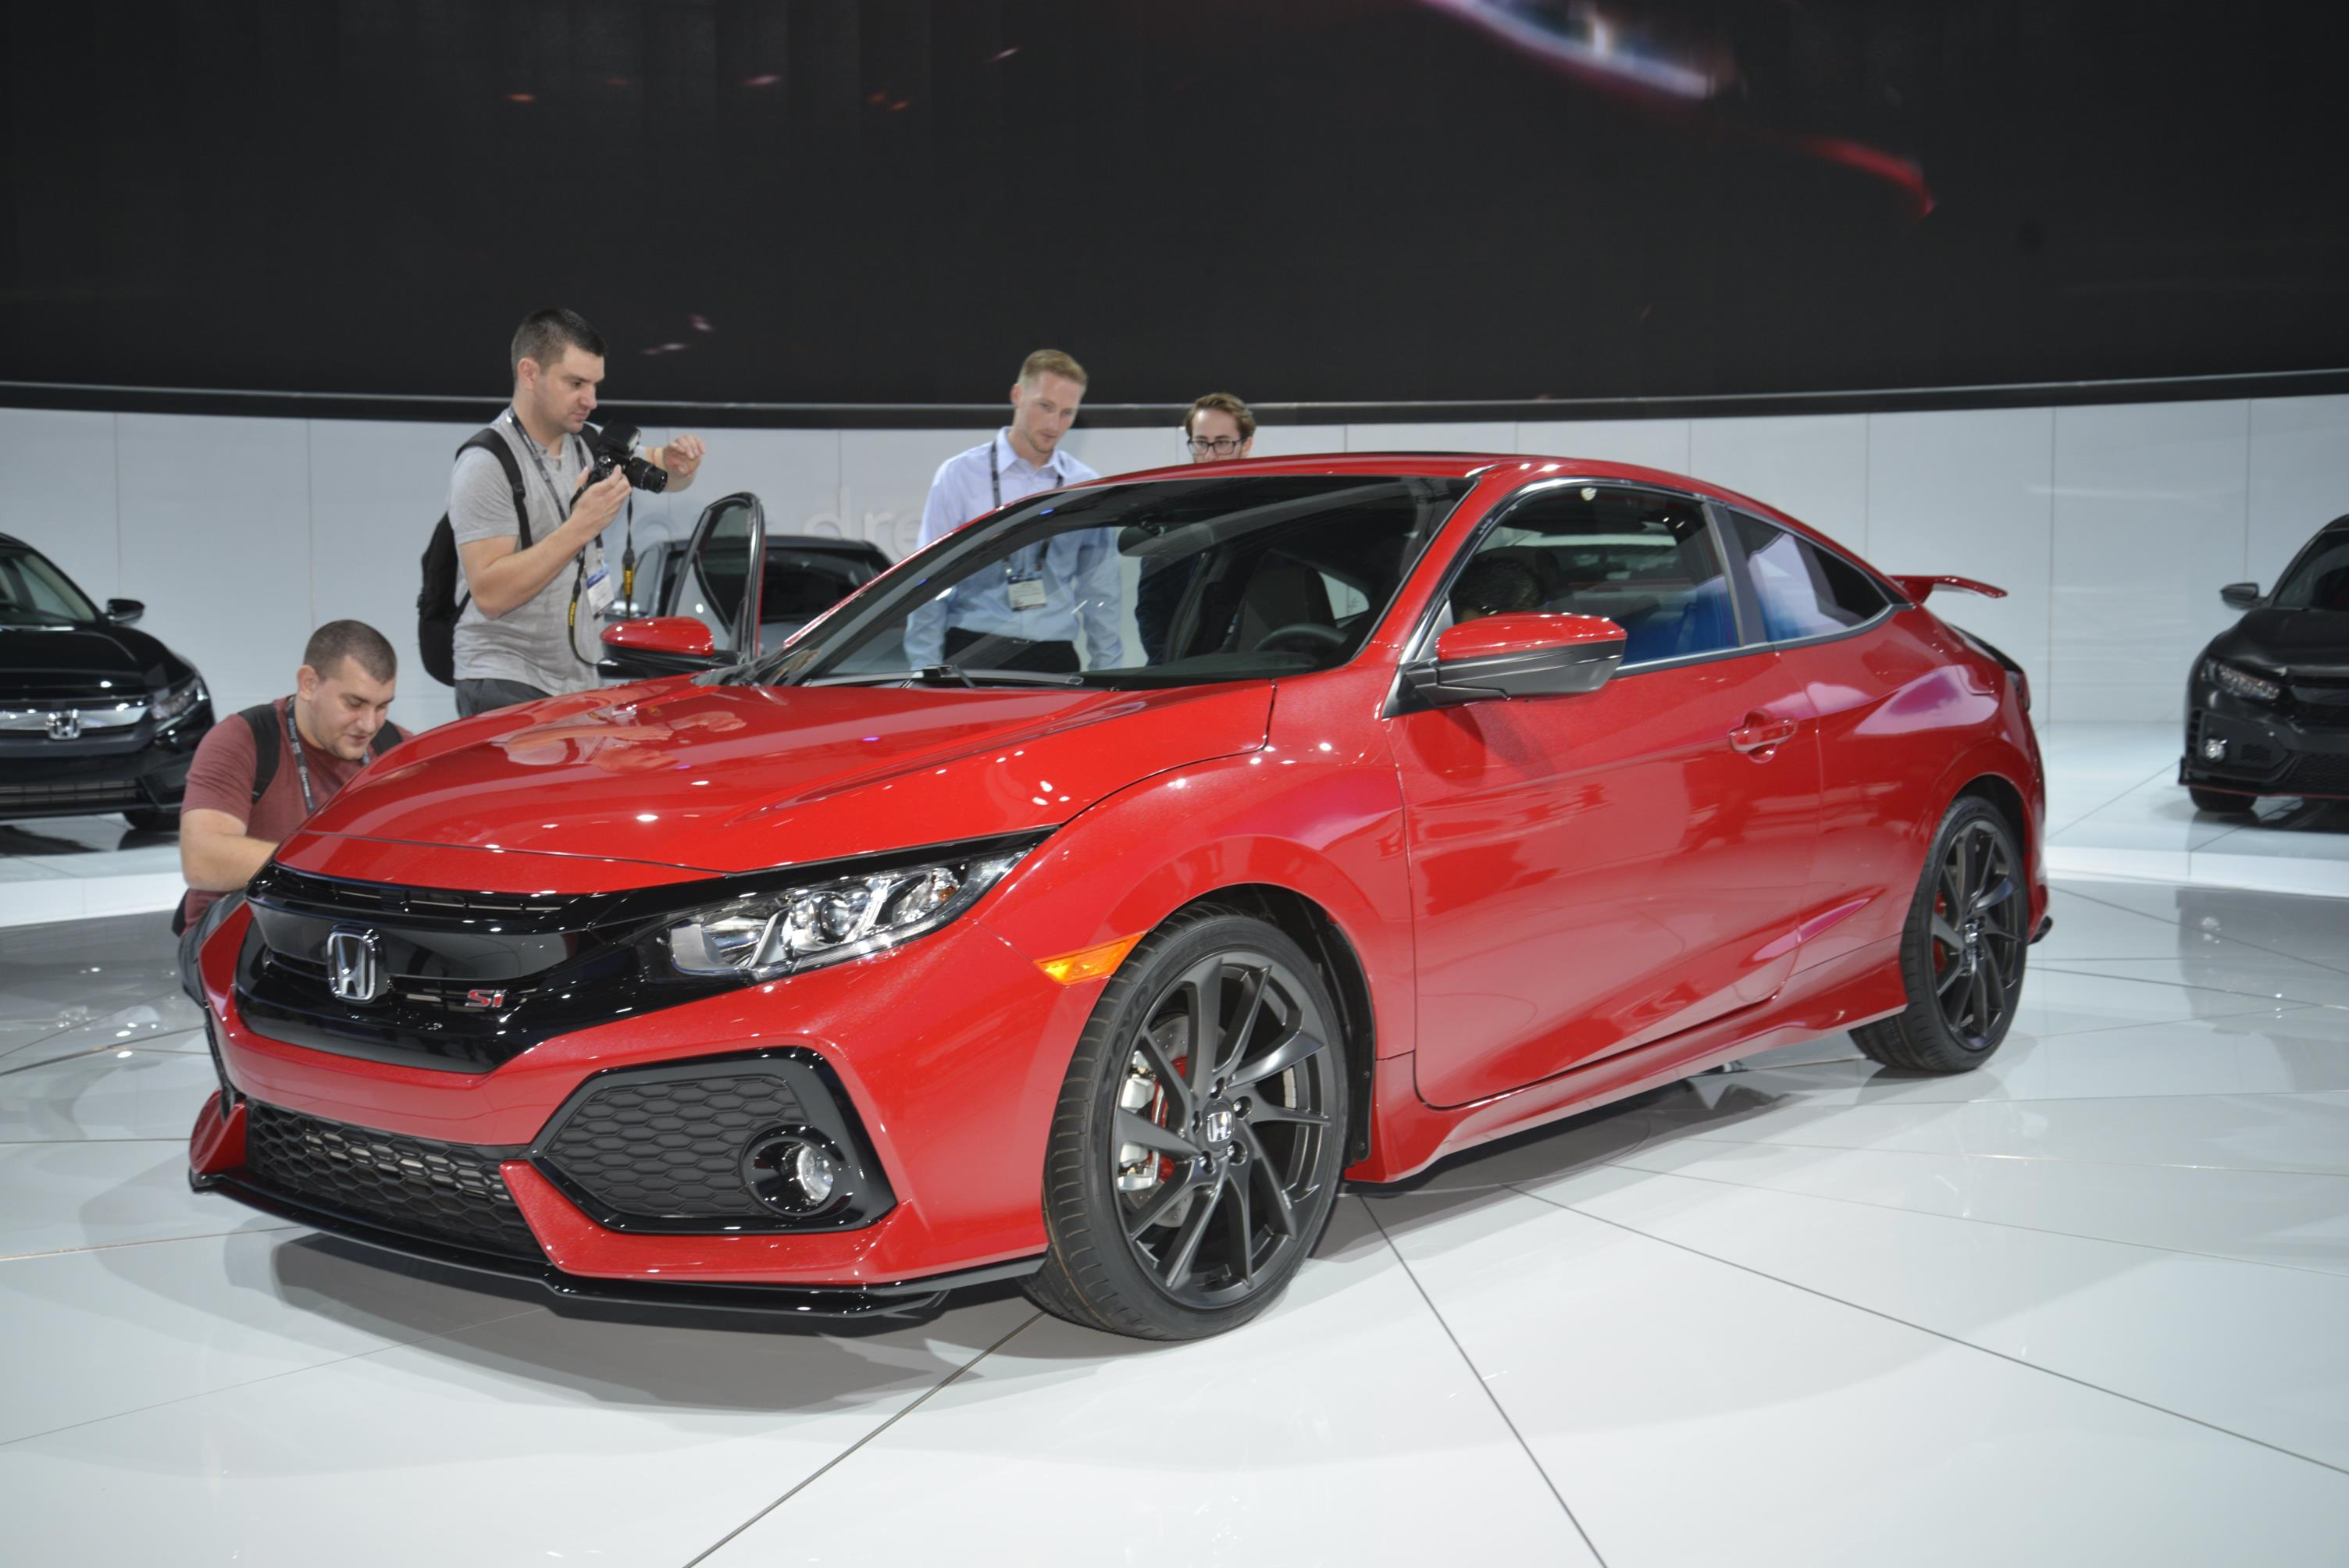 sporty honda civic si prototype completes 10th generation. Black Bedroom Furniture Sets. Home Design Ideas